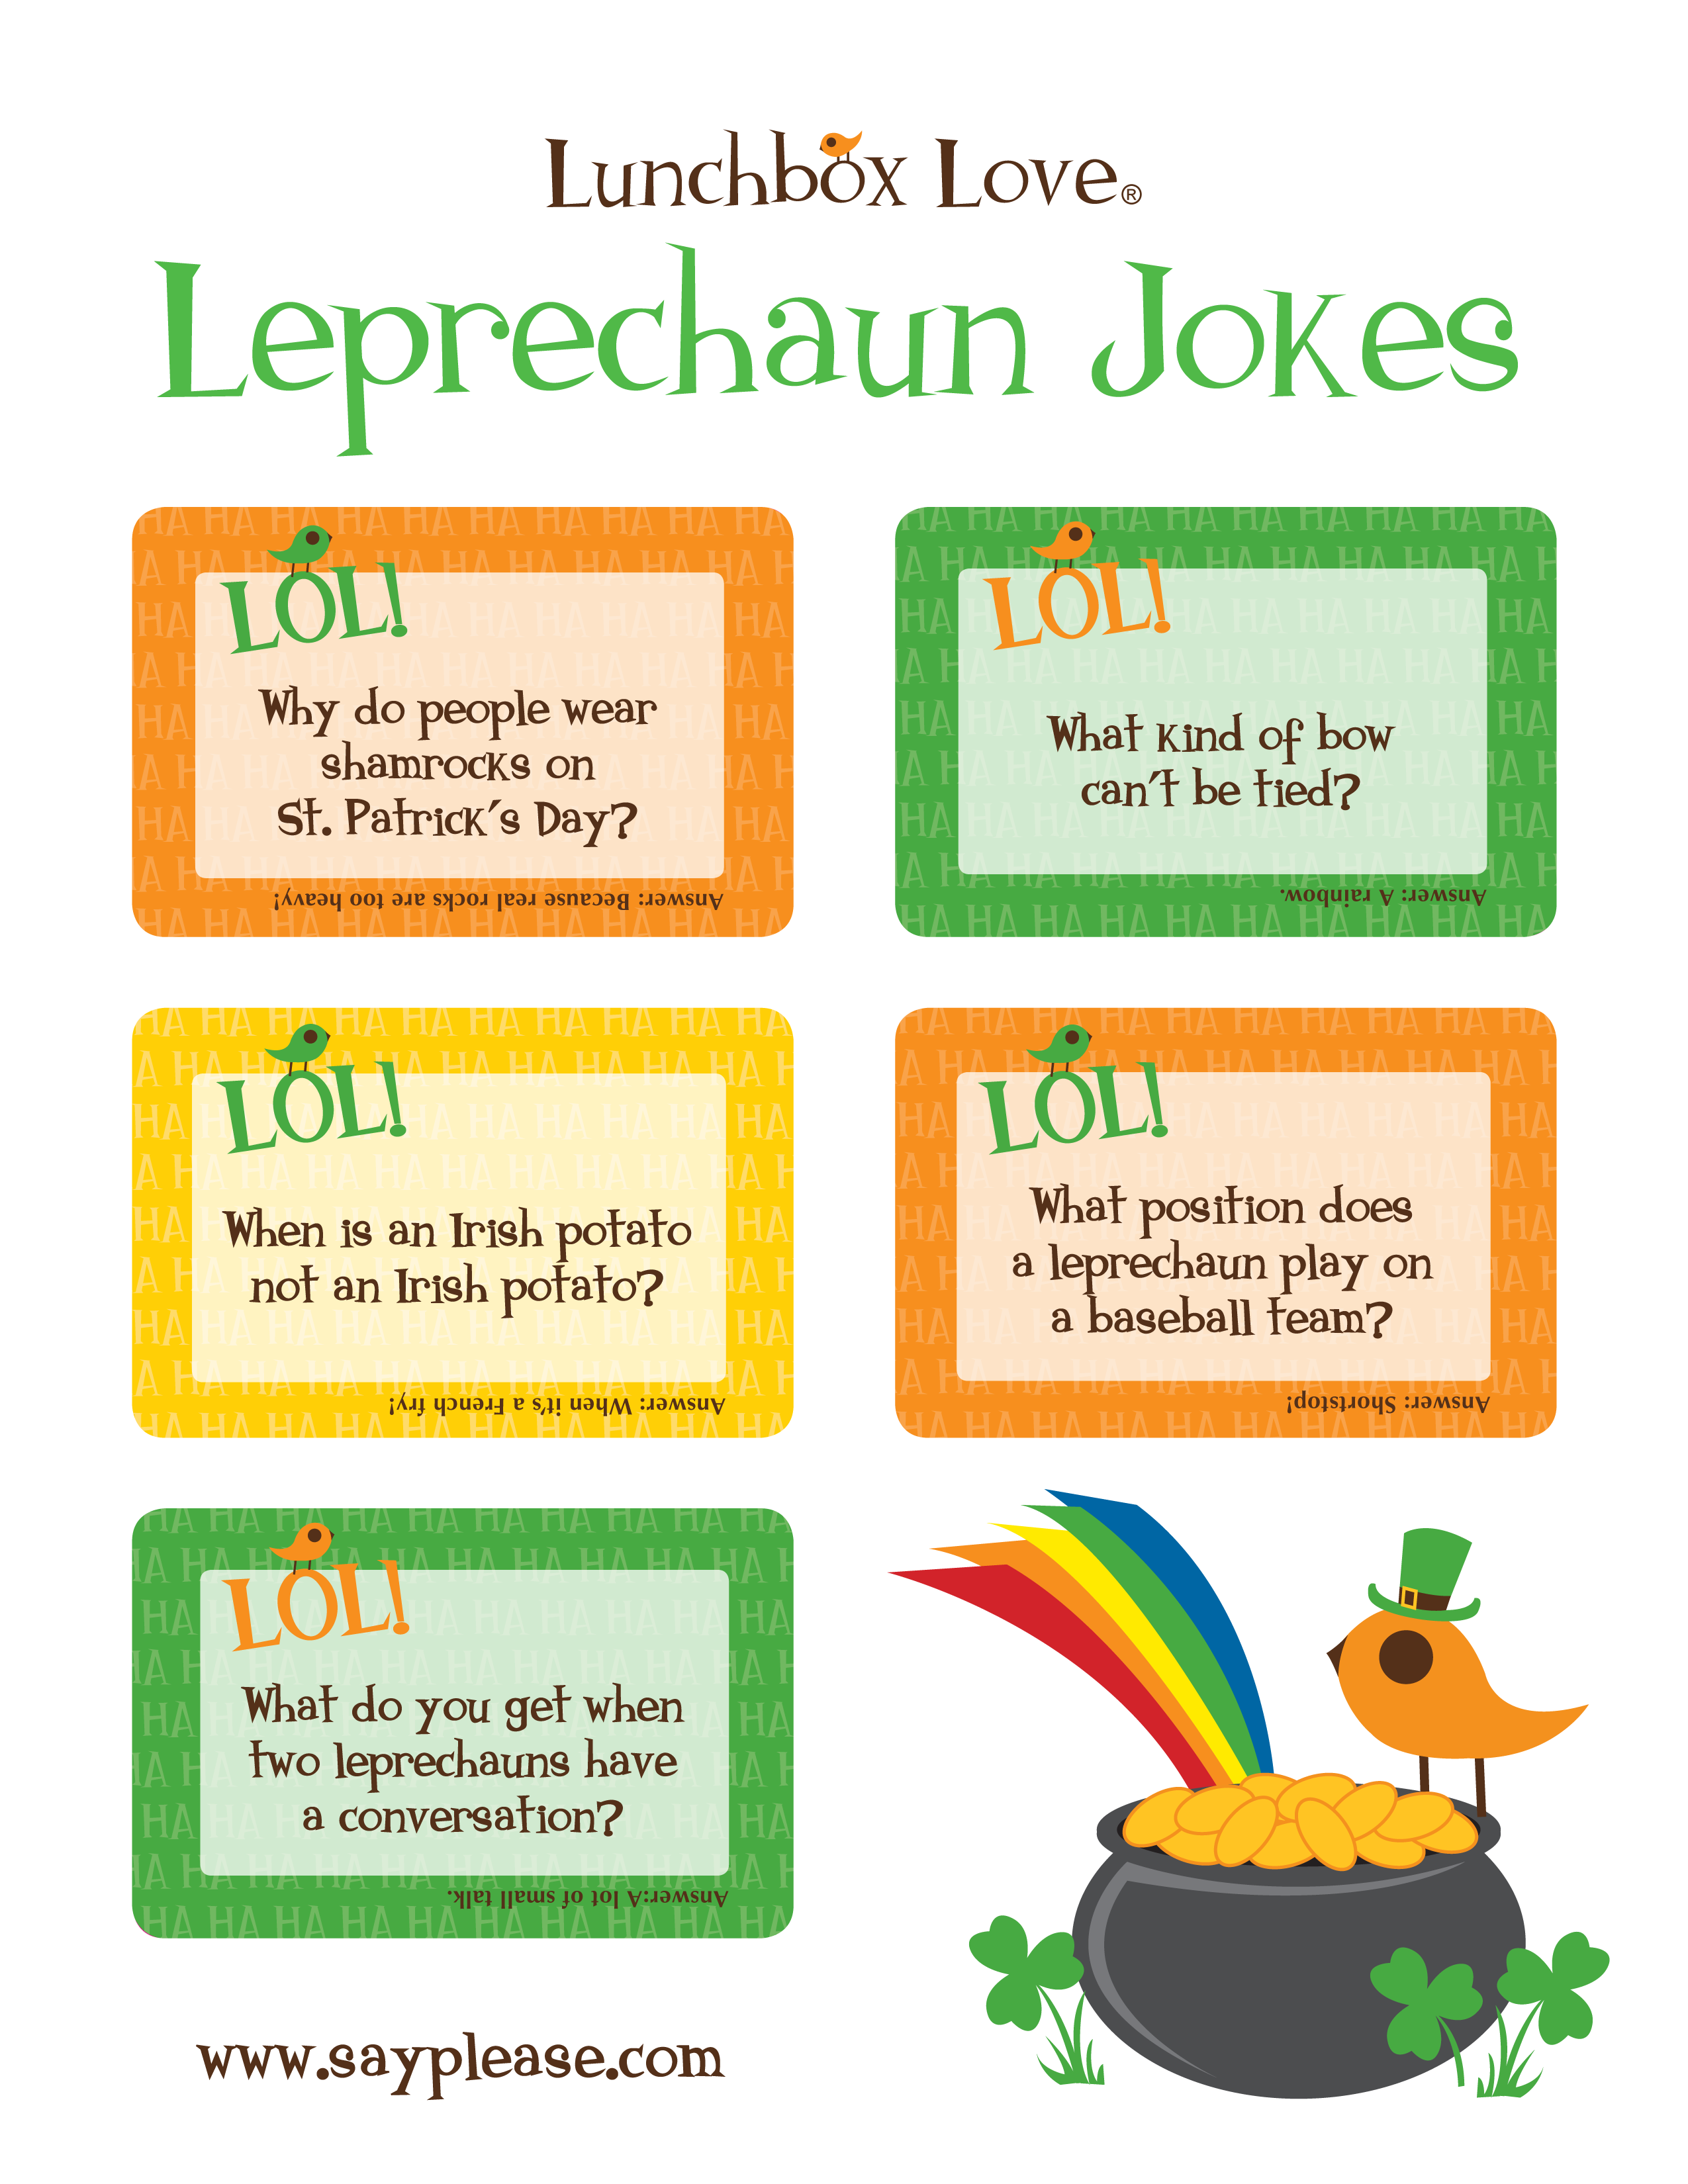 Uncategorized St Patricks Day Jokes For Kids whats your leprechaun name this is a fun st patricks day stpatricksday see more free joke printables perfect for lunches leading up to the holiday or spread